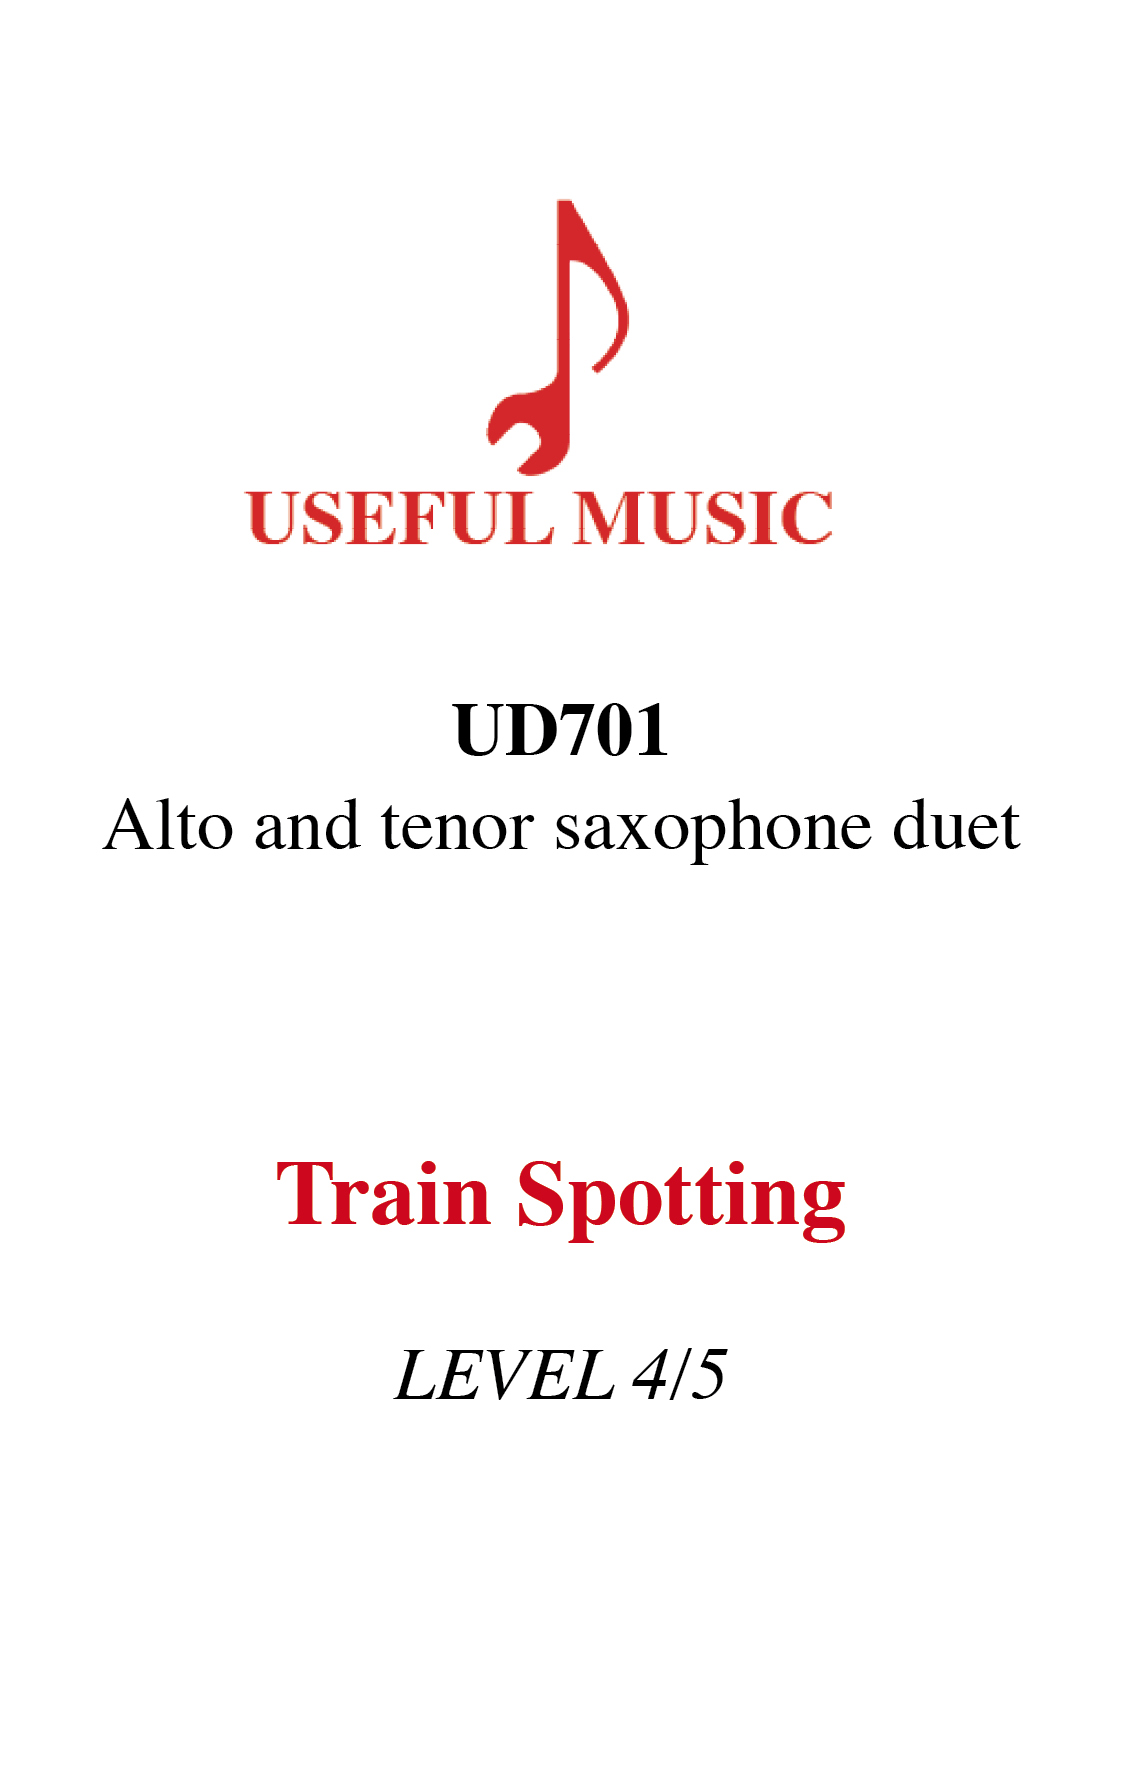 Train Spotting - saxophone duet